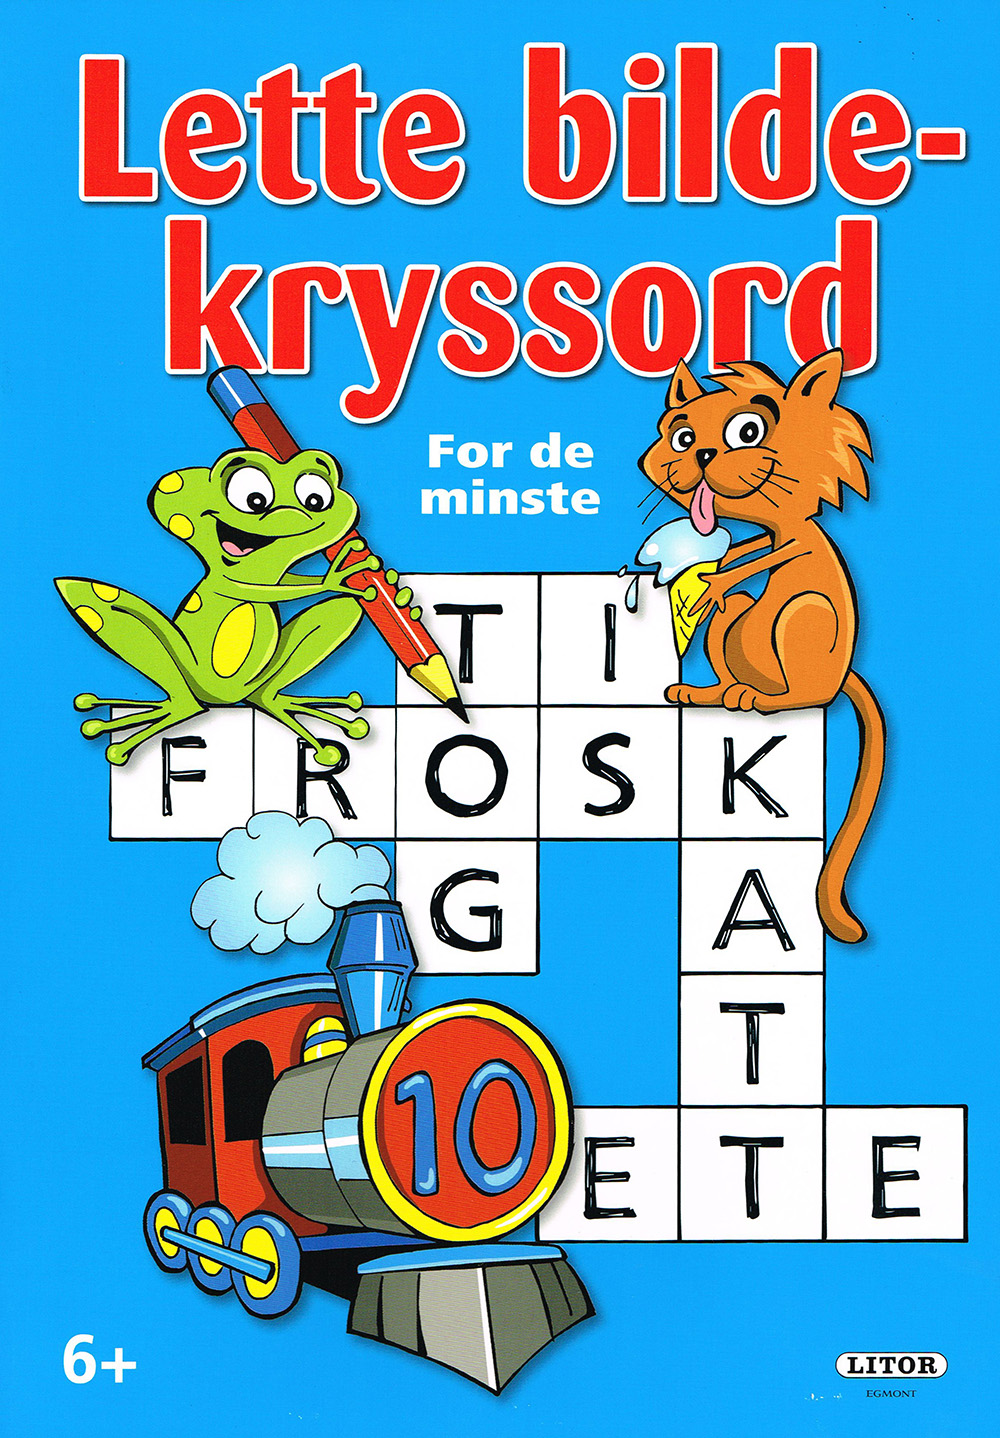 Kryssord for barn, illustrasjon barn